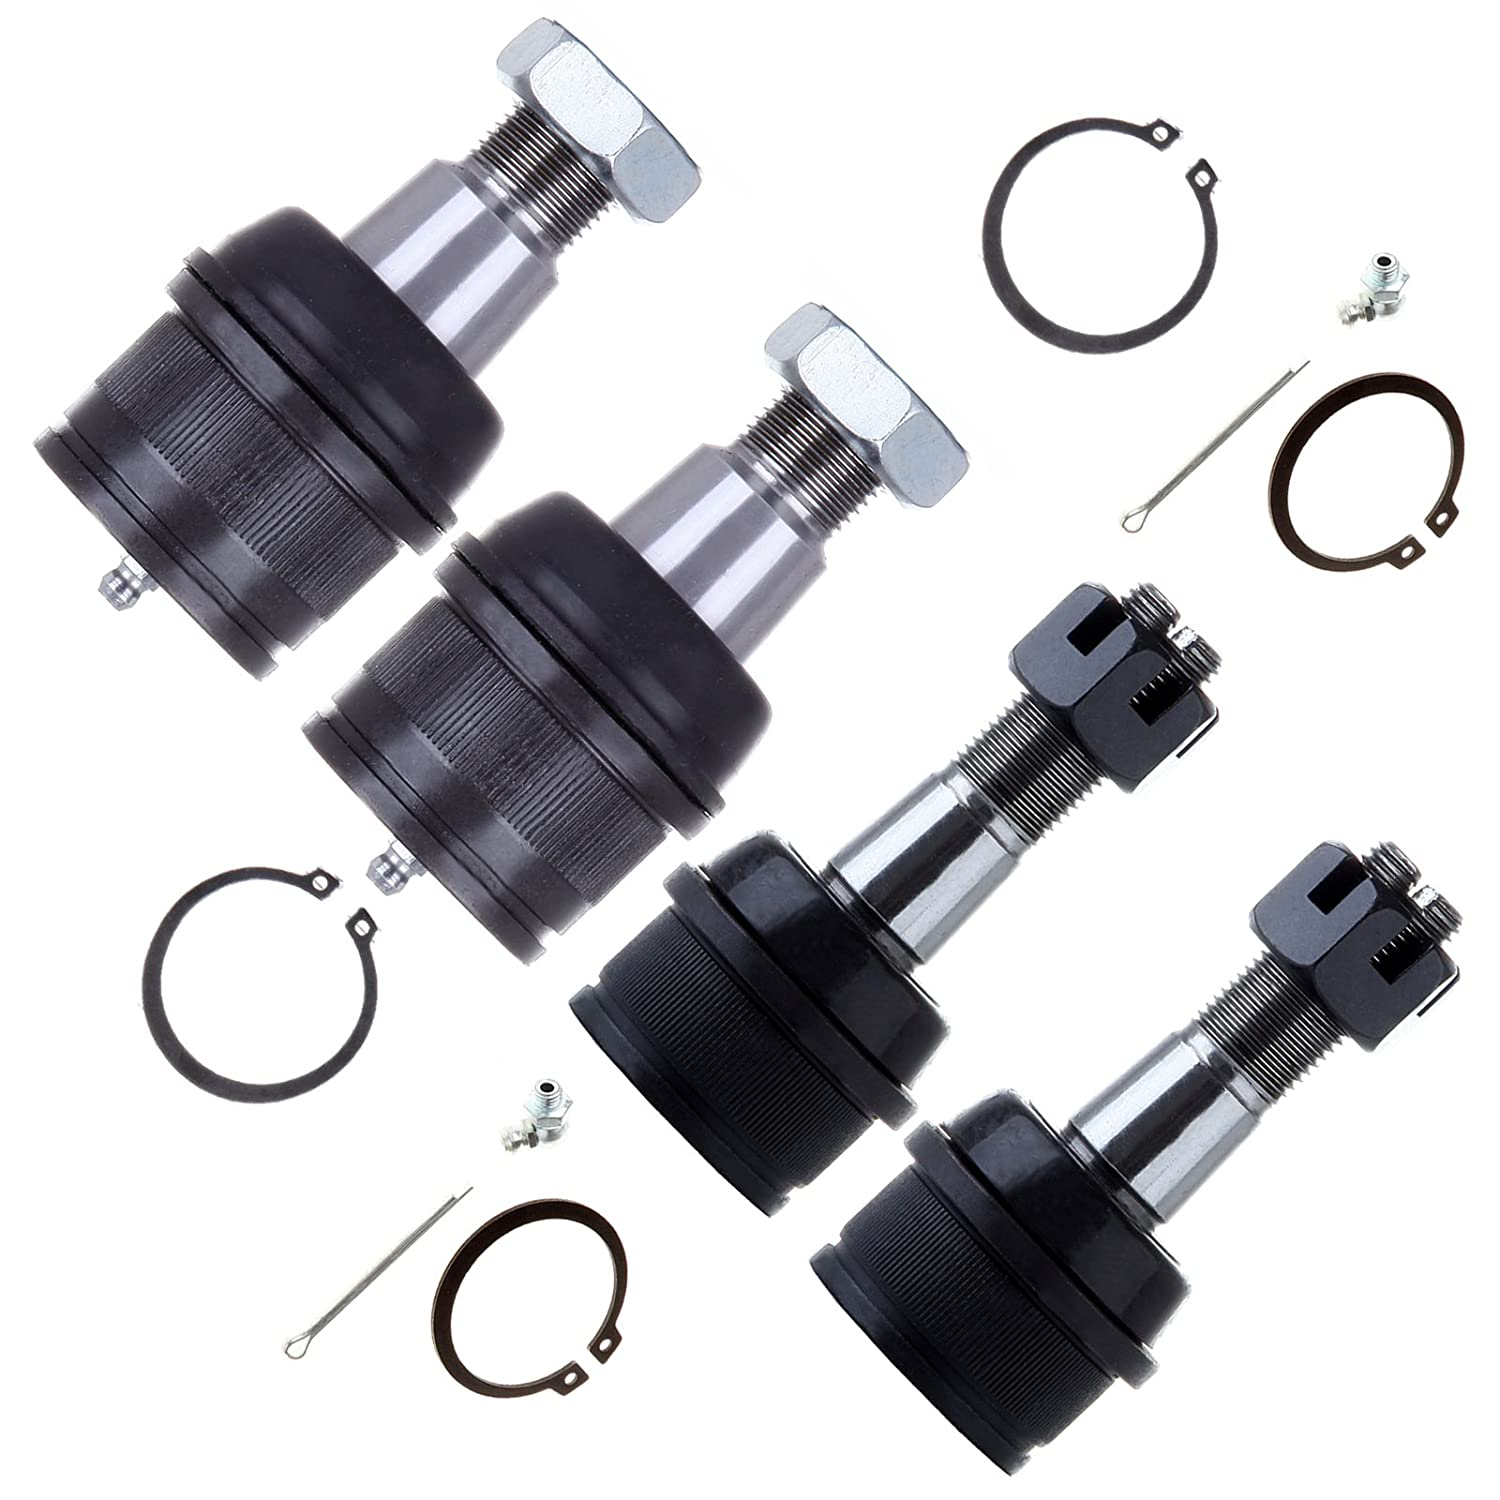 ECCPP Front Lower Upper Ball Joint Suspension Kit fit for 94-99 Dodge Ram 2500 Ram 3500 00-05 Ford Excursion 99-12 F-250 Super Duty 92-97 F-350 99-12 F-350 Super Duty fits 4WD only Qty(4) 801167-5211-1822271